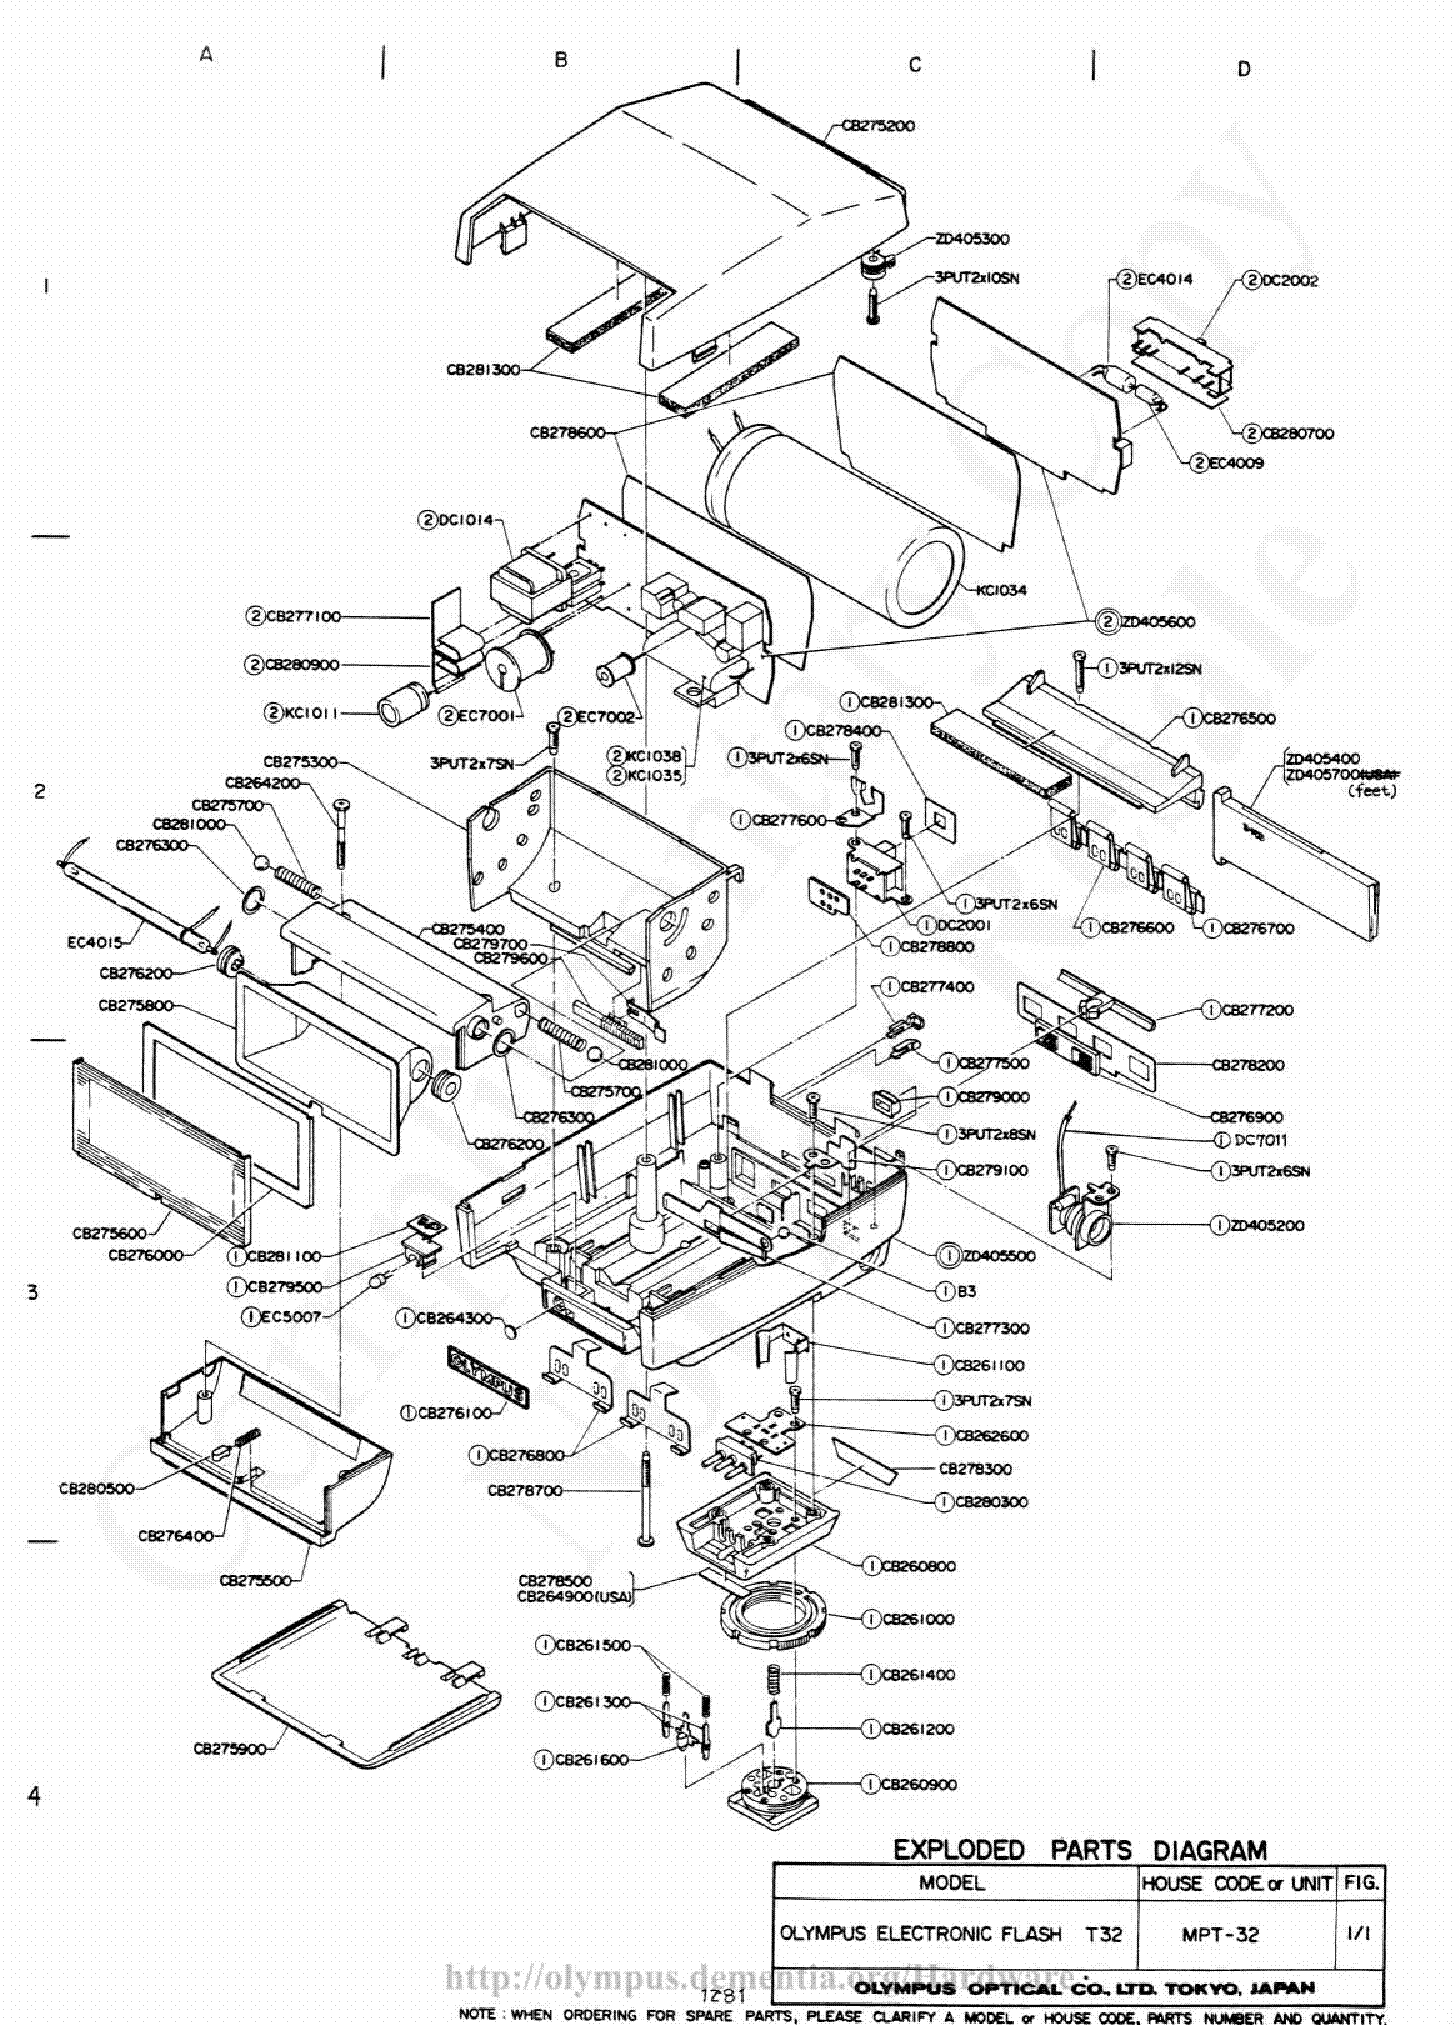 OLYMPUS T-32 EXPLODED PARTS DIAGRAM Service Manual